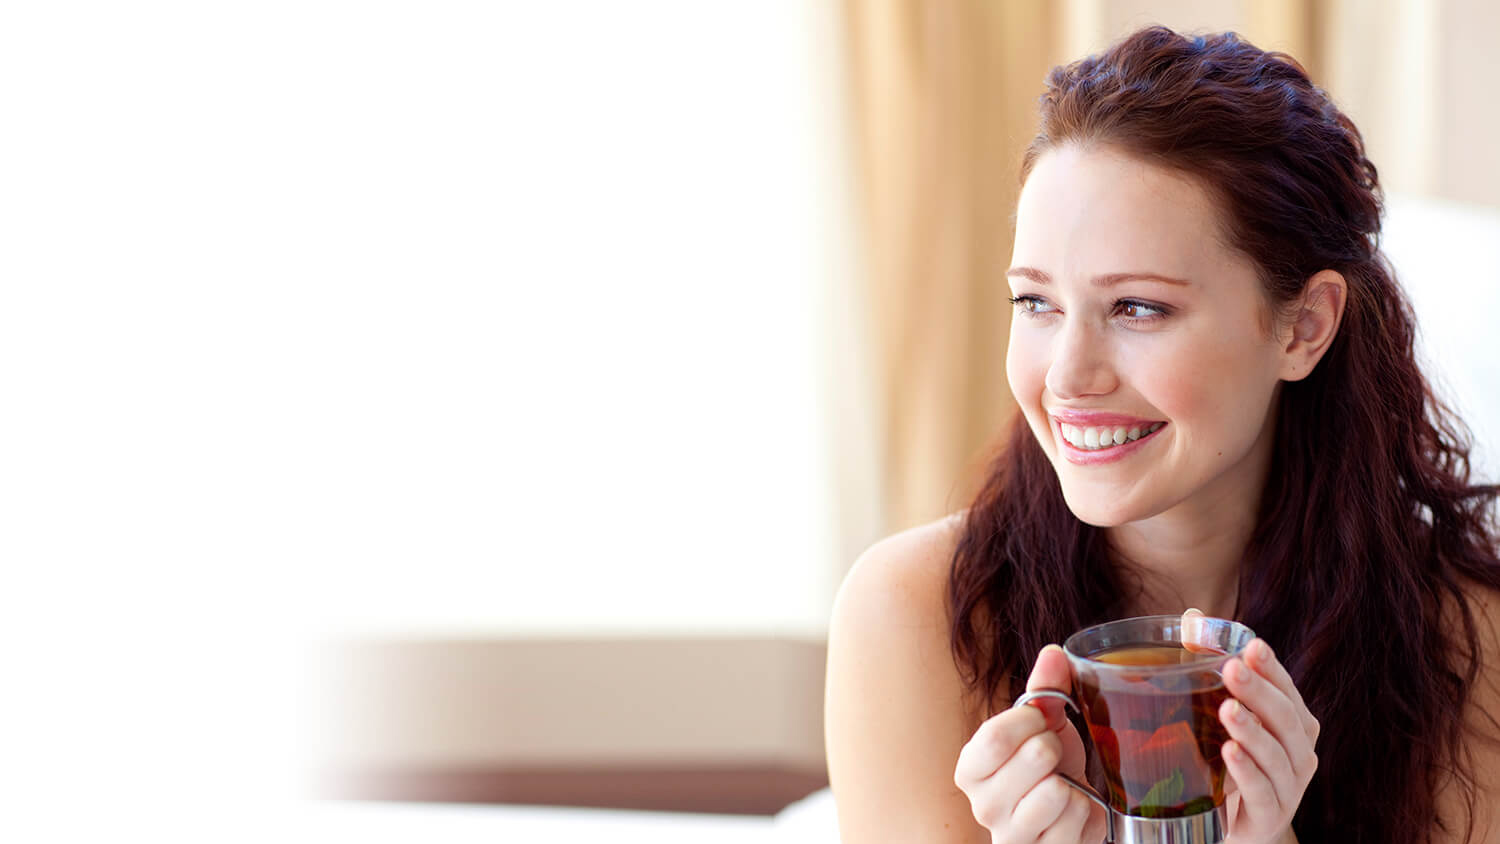 Young woman with coffee cup looking out a window